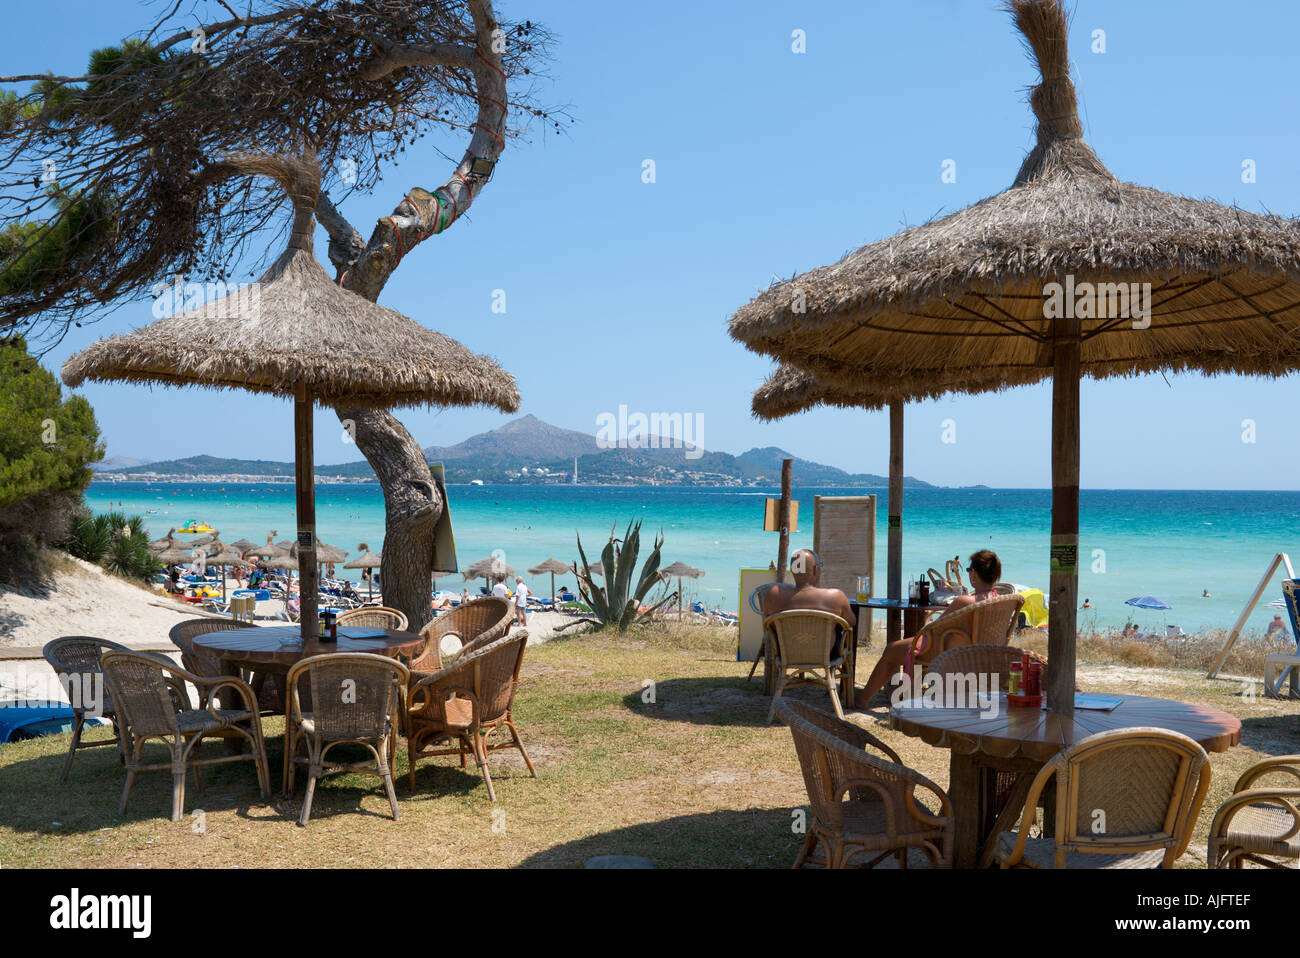 Beach Bar, Platja de Muro, Alcudia, Mallorca, Spain - Stock Image